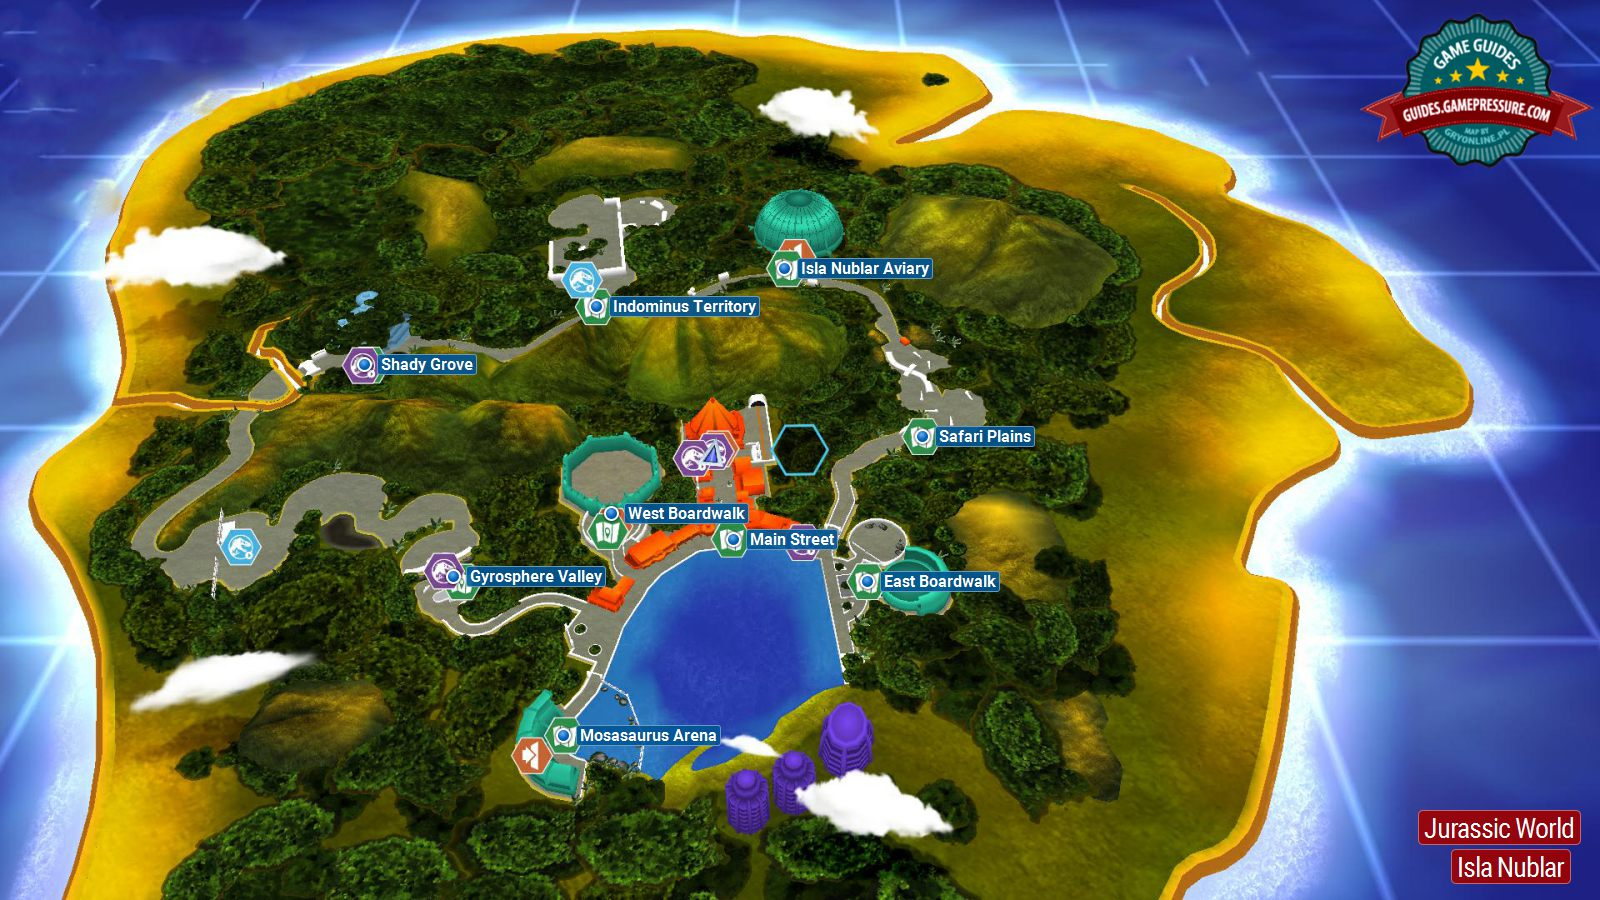 Introduction and map jurassic world secrets in free roam lego jurassic world jurassic world gumiabroncs Gallery